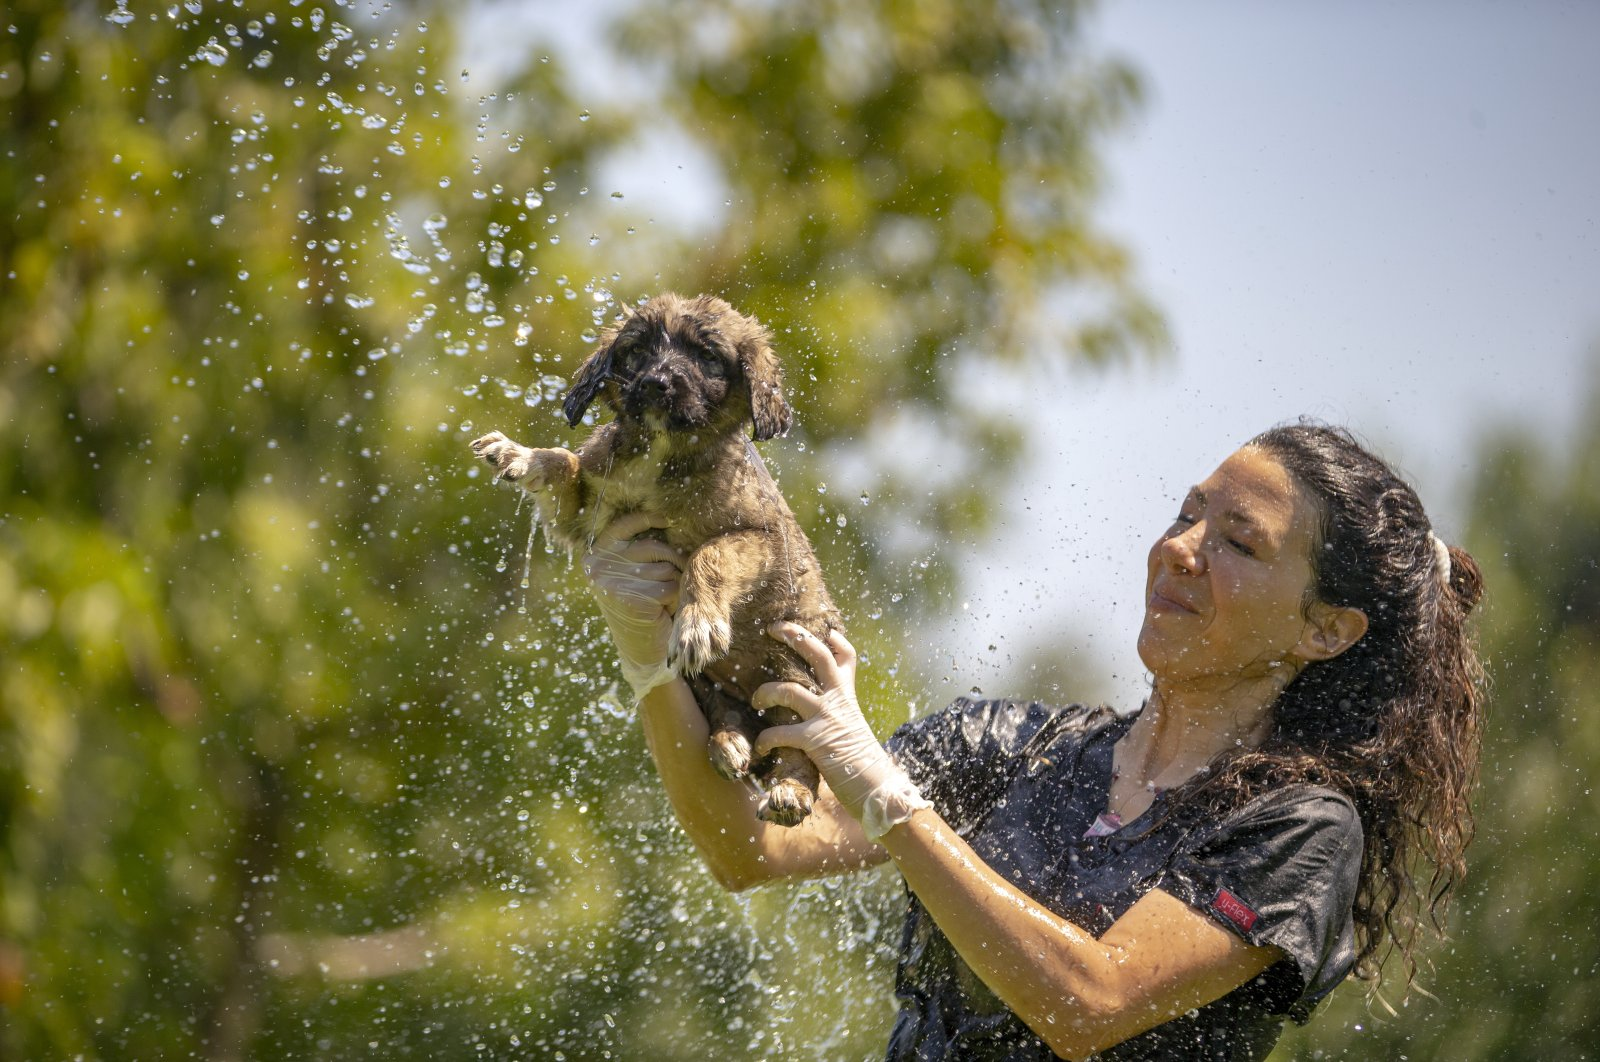 A veterinarian holds a dog as water from a hose sprays on a puppy, in Konyaaltı district, in Antalya, southern Turkey, Aug. 3, 2020. (AA Photo)